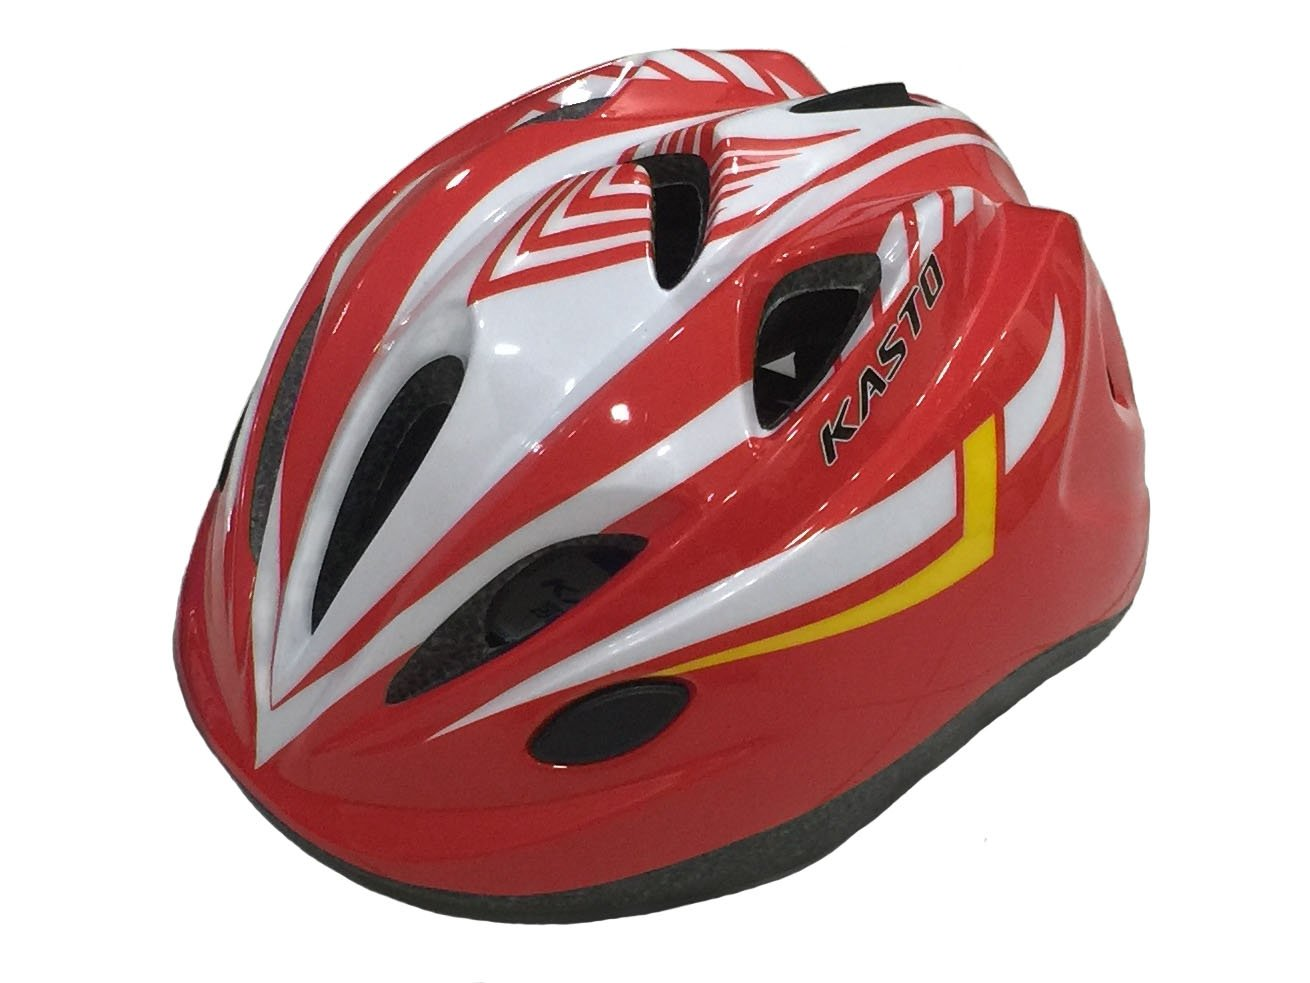 SG Dreamz Kids Protective Skateboard Helmet, Breather Holes, Unisex, Safety, Adjuster Dial, Cool, Comfortable, Durable For Child Head Size 19.6 - 22 inch (White Red)